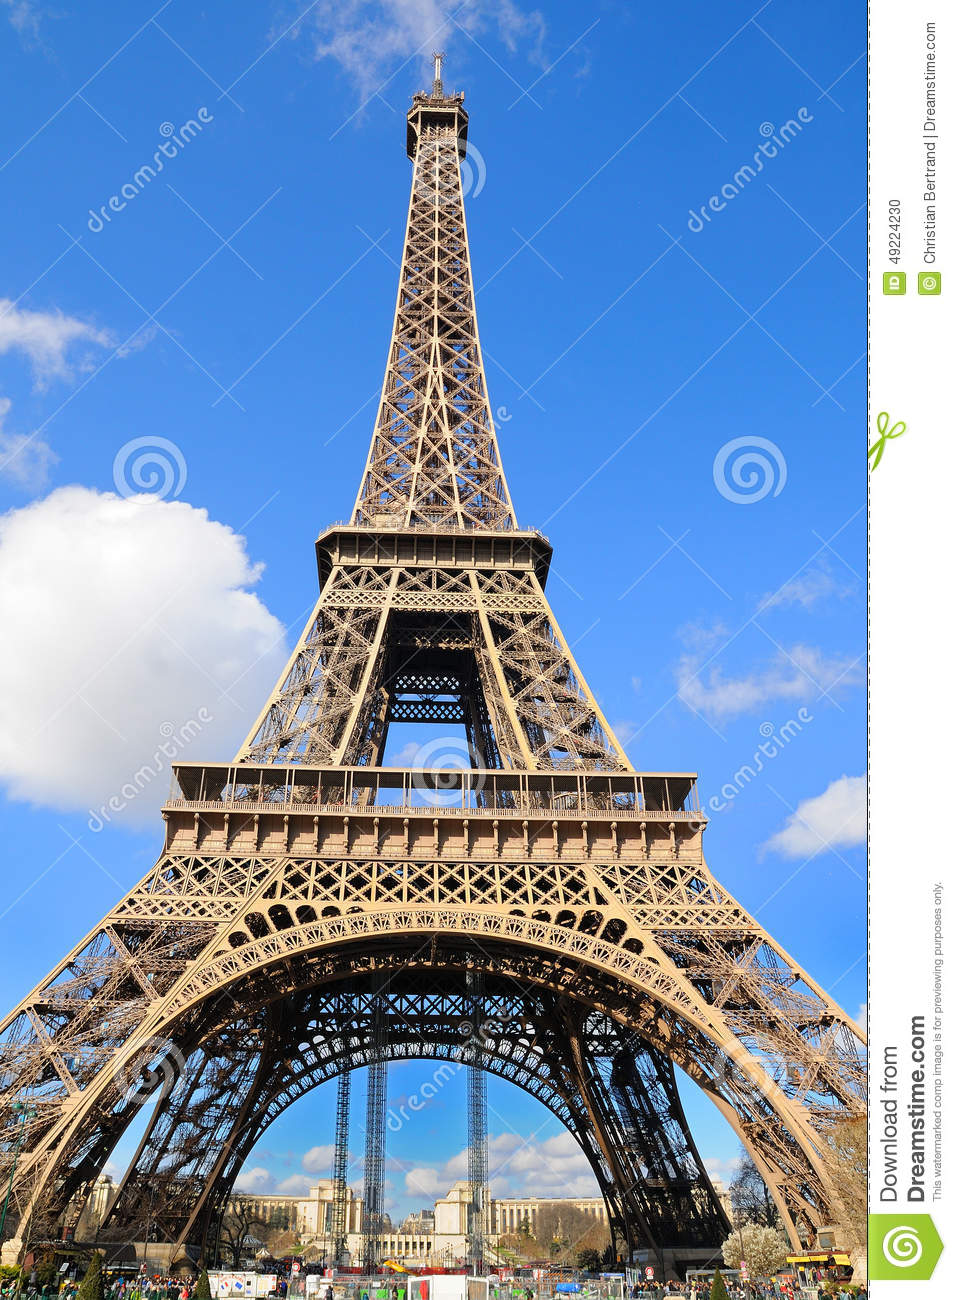 daylight view of the eiffel tower la tour eiffel is an iron lattice tower located editorial. Black Bedroom Furniture Sets. Home Design Ideas